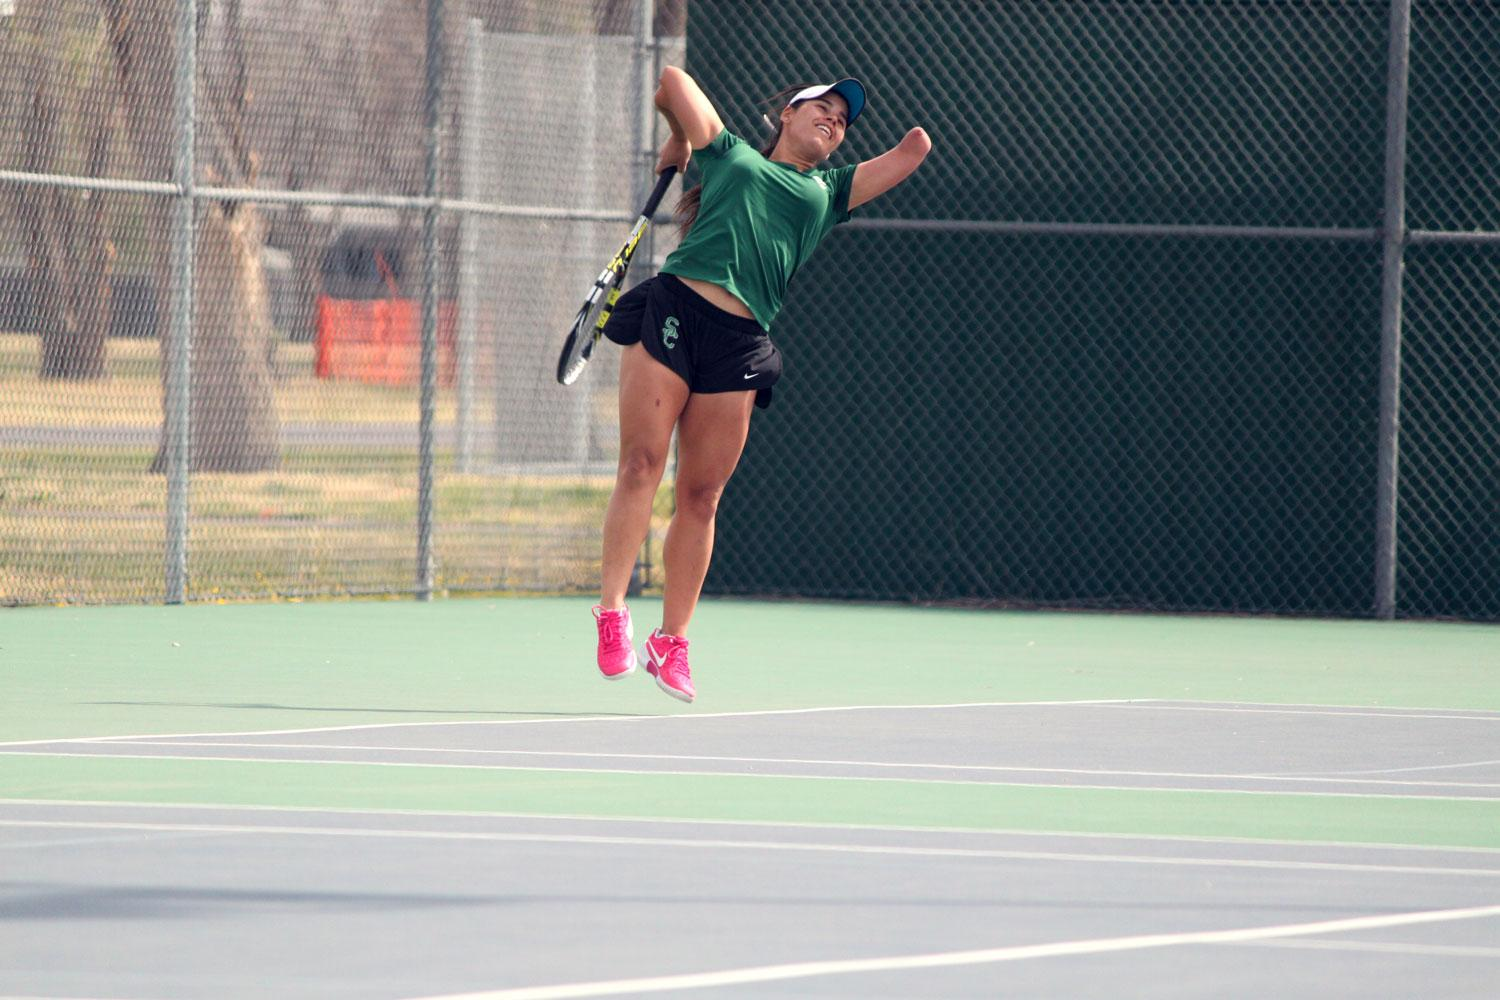 Sophomore Thalita Rodrigues powers up for a serve. Rodrigues had a great first season in Liberal for the Lady Saints winning Region VI Championships in both singles and doubles while placing in the top five at the NJCAA National Tournament in both as well.